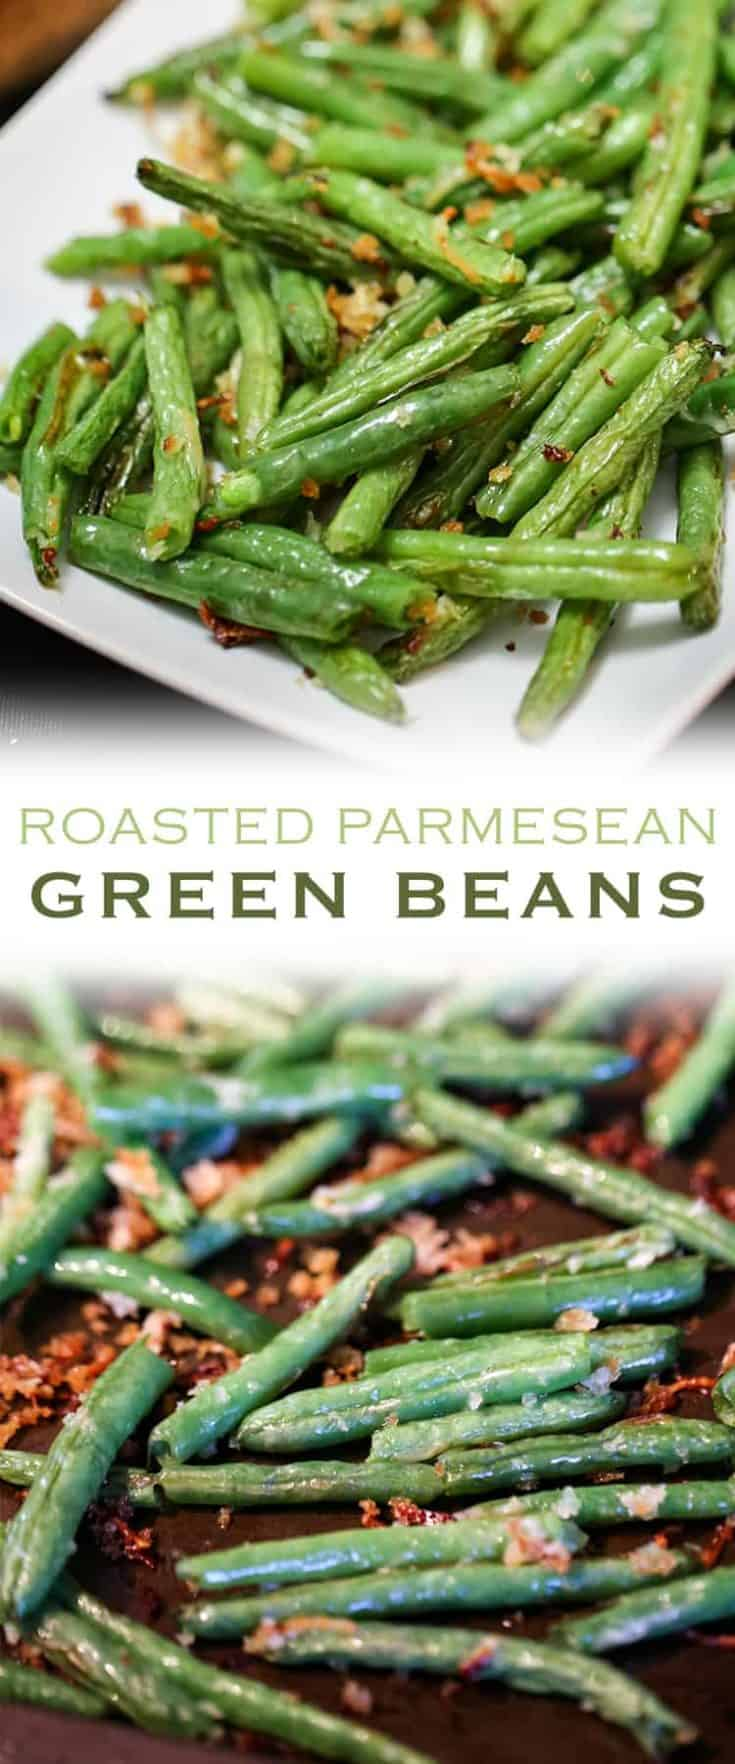 These Roasted Parmesan Green Beans are the most delicious way to enjoy fresh green beans. This simple vegetable recipe makes a great side dish to any meal! #greenbeans #roastedgreenbeans #sidedish